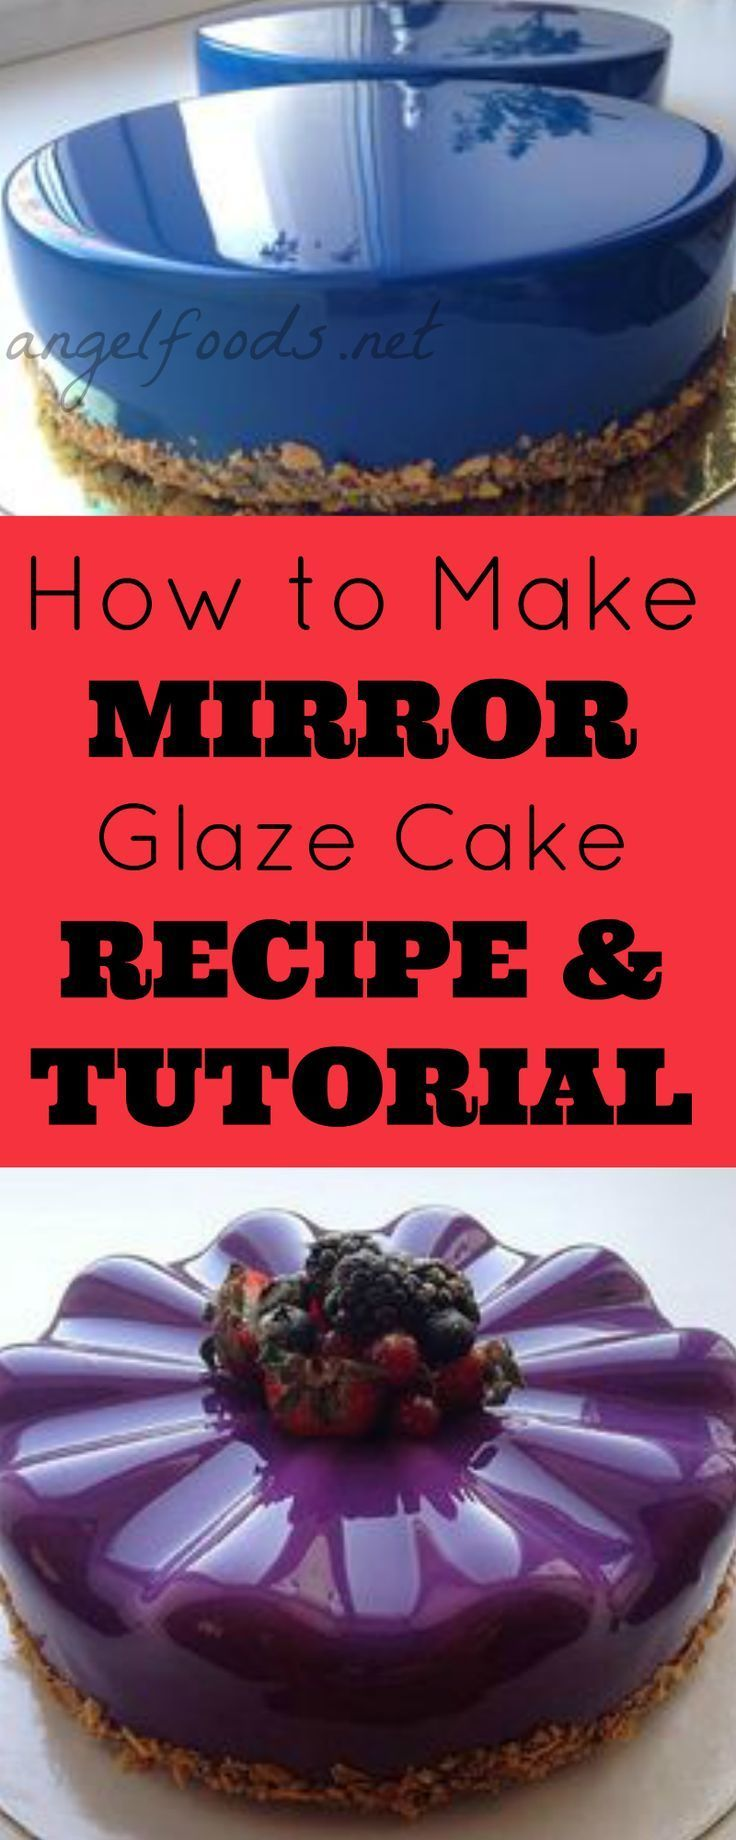 How to Make Mirror Glaze (Shiny) Cakes: Recipe & Tutorial   The latest craze to hit the caking world is the out-of-this-world shiny, mirror-like glaze and glazing effect. It is cool stuff!   http://angelfoods.net/how-to-make-mirror-glaze-shiny-cakes-recip